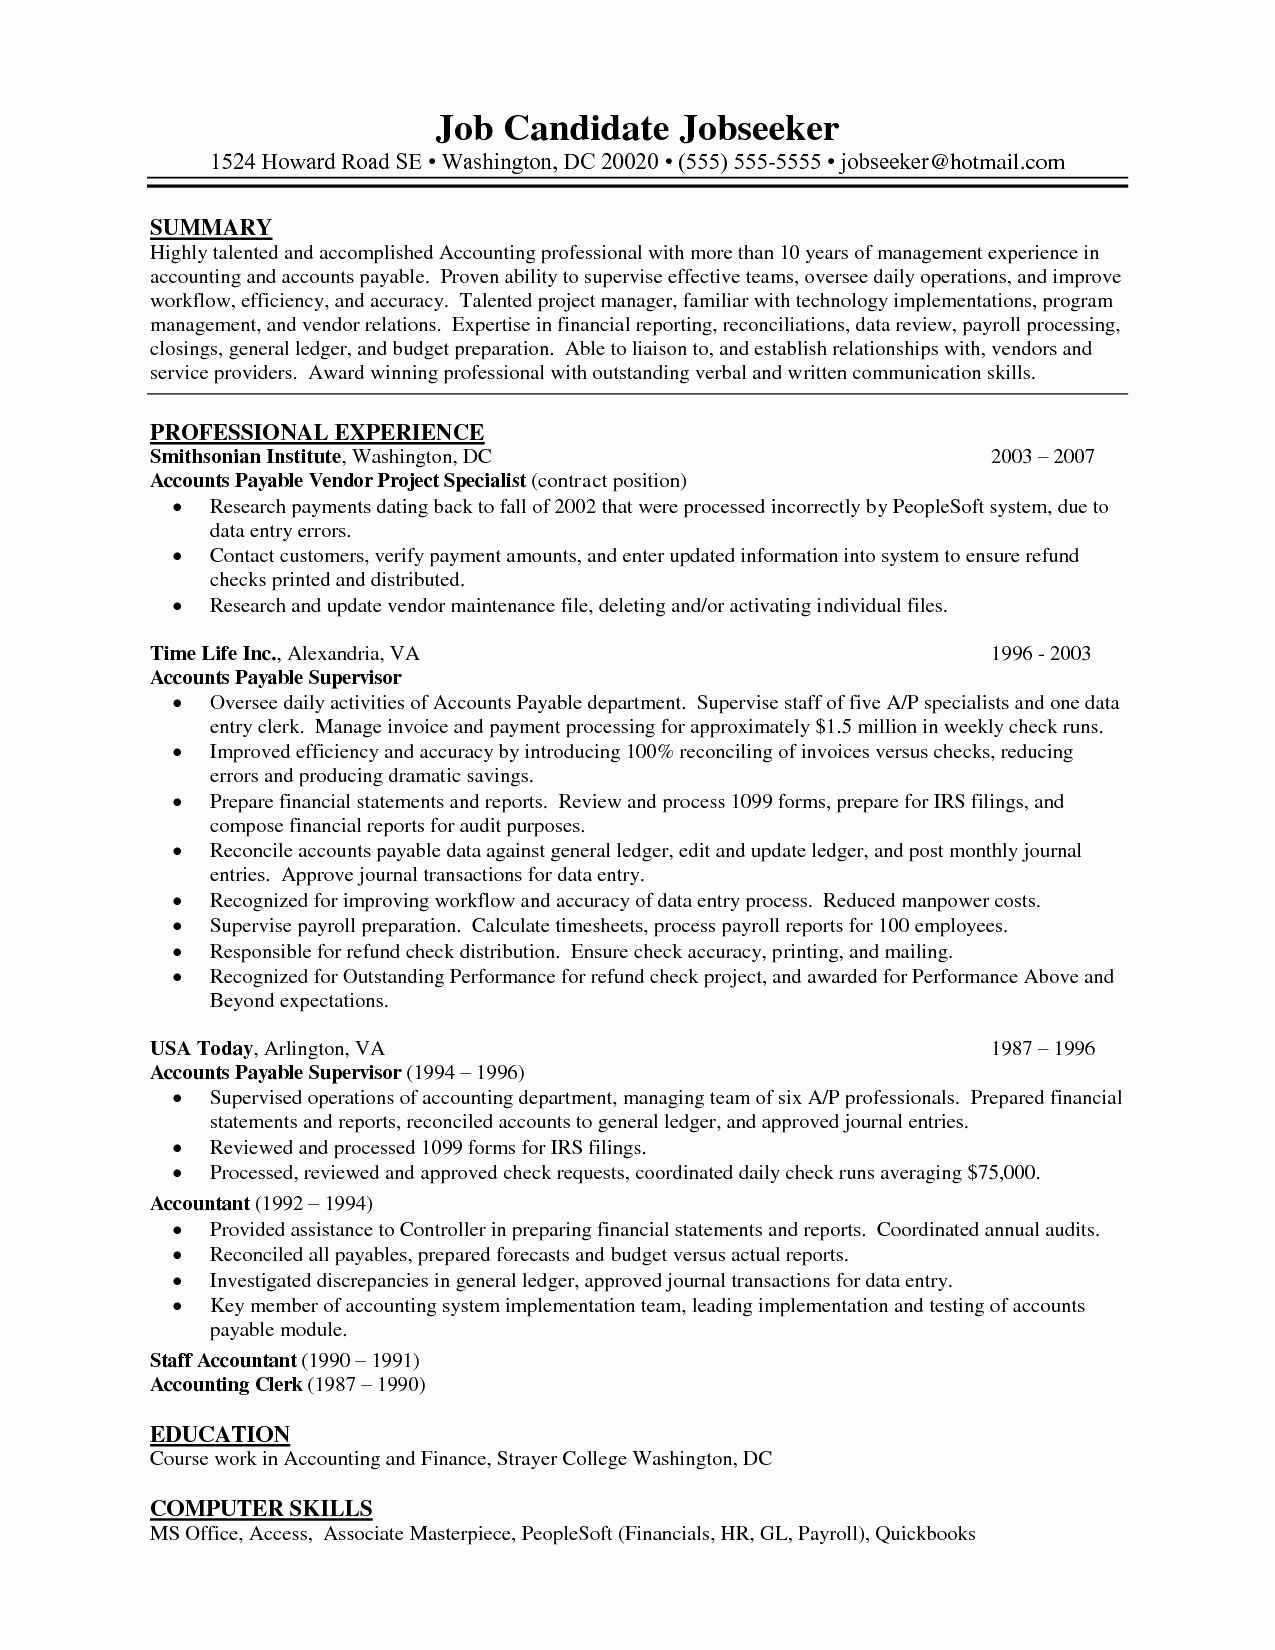 Account Payable Resume Example Beautiful Warehouse Supervisor Resume Samples Objective Examples Resume Objective Examples Accounts Payable Resume Examples